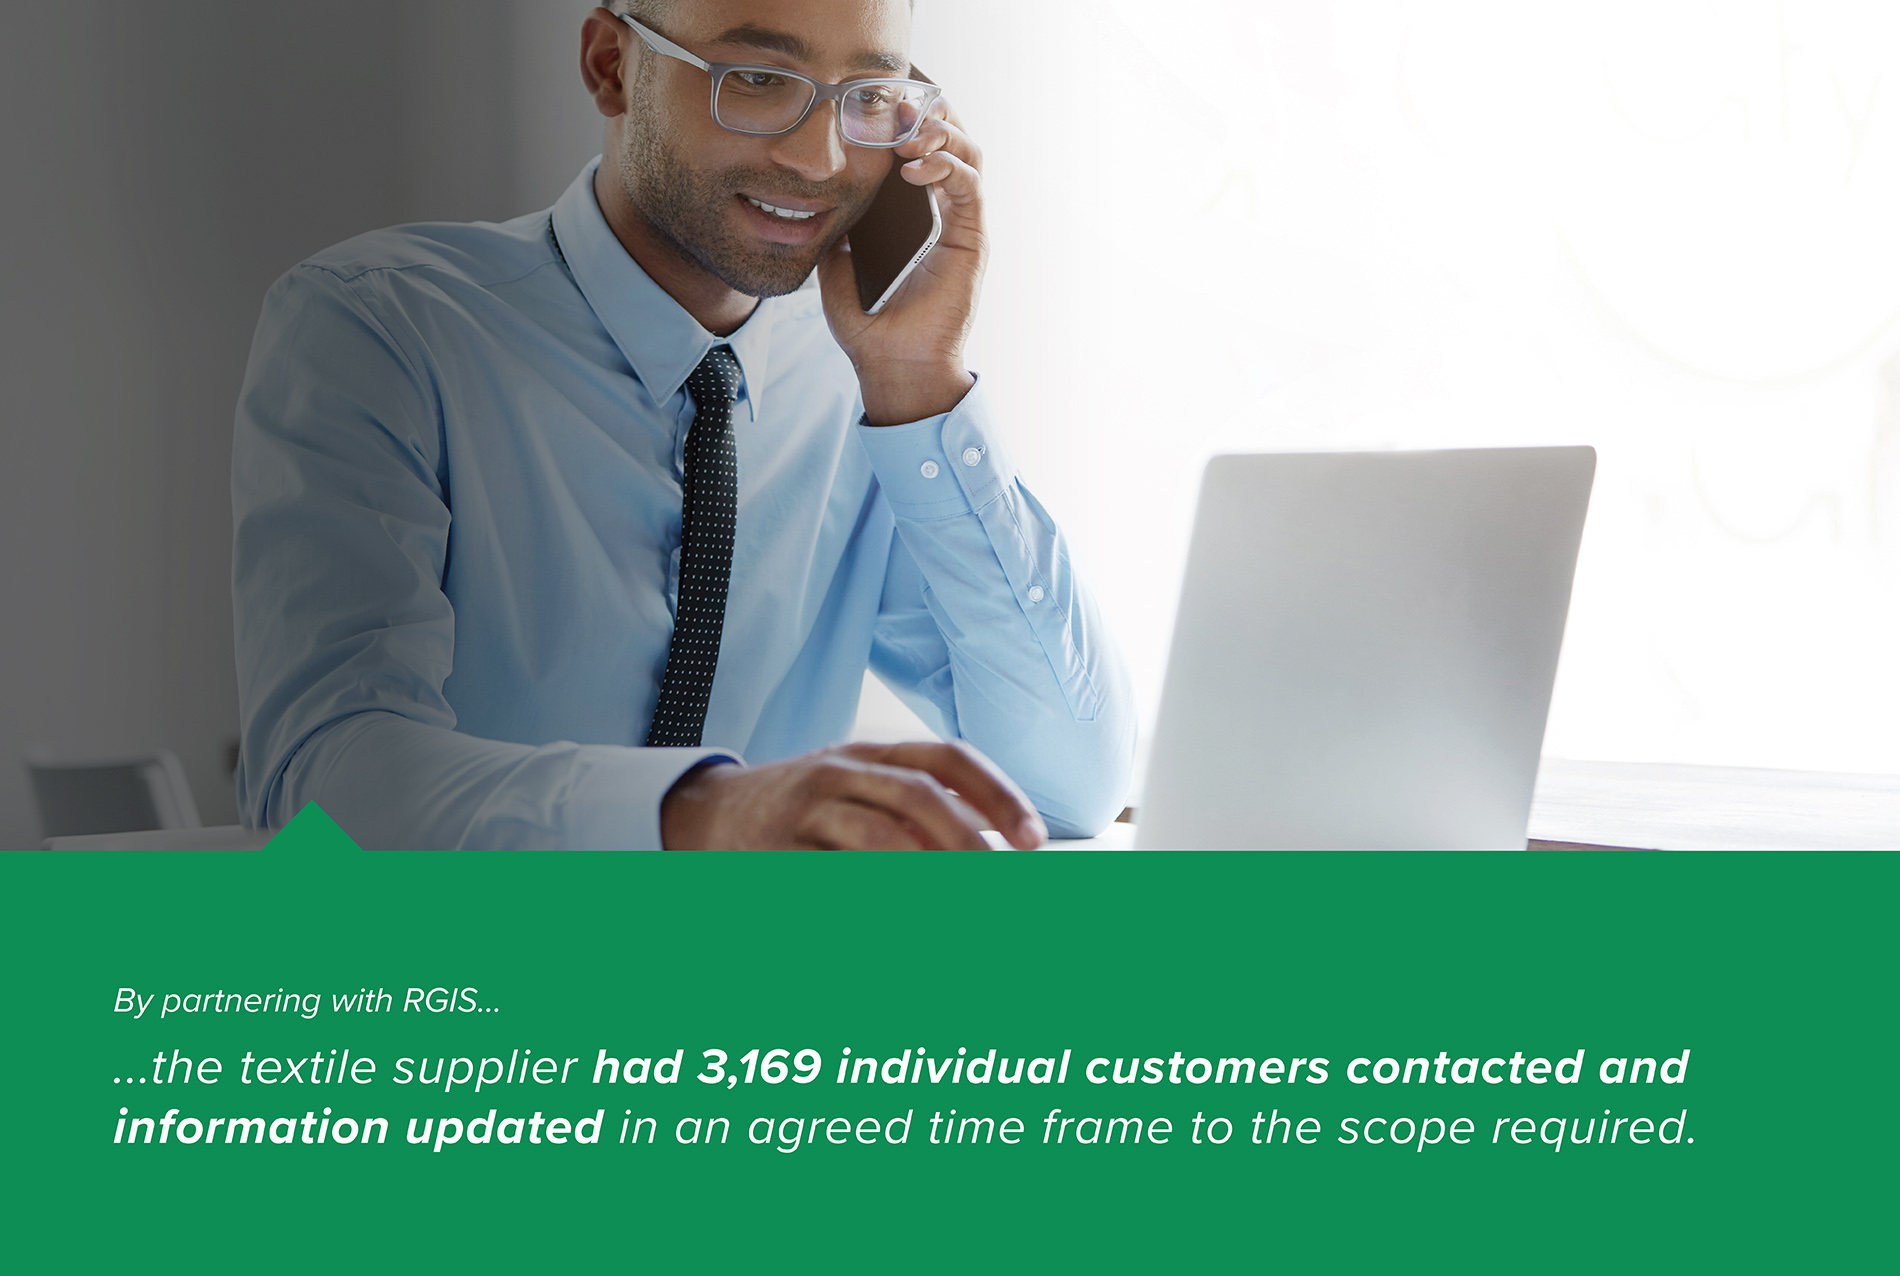 Cold Call Customer Database to Update Key Fields